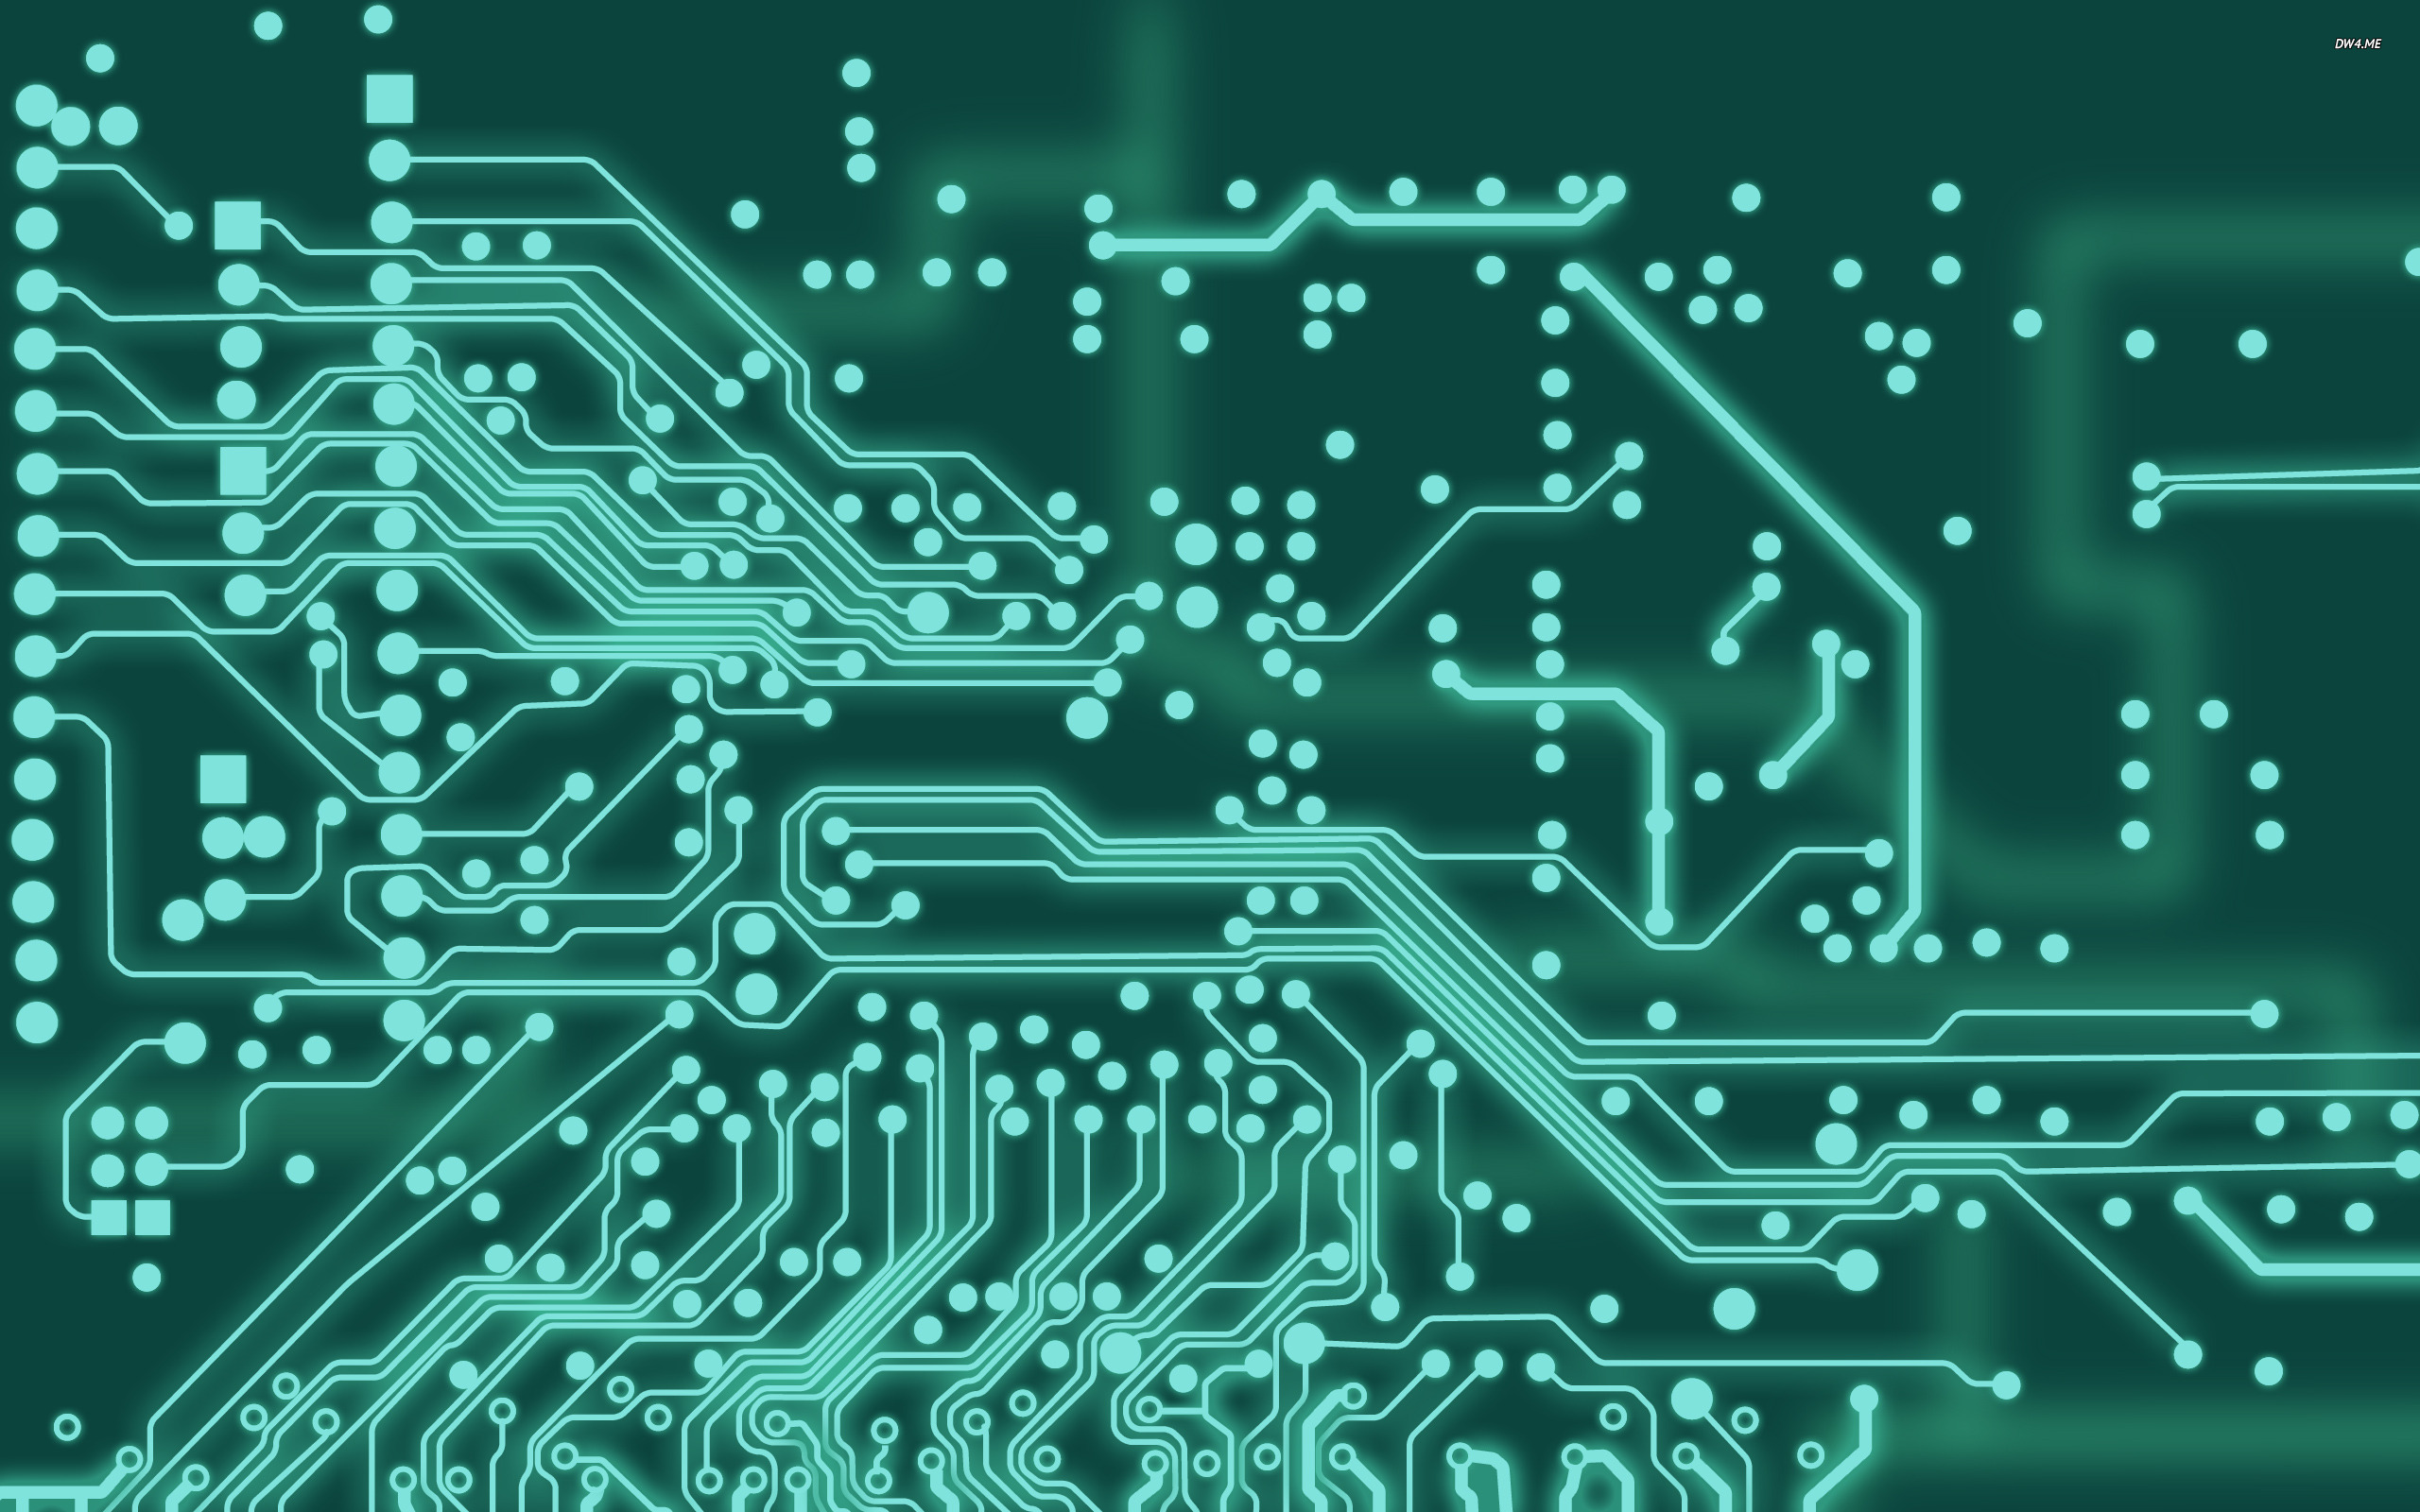 46+] iPhone Circuit Board Wallpaper on WallpaperSafari